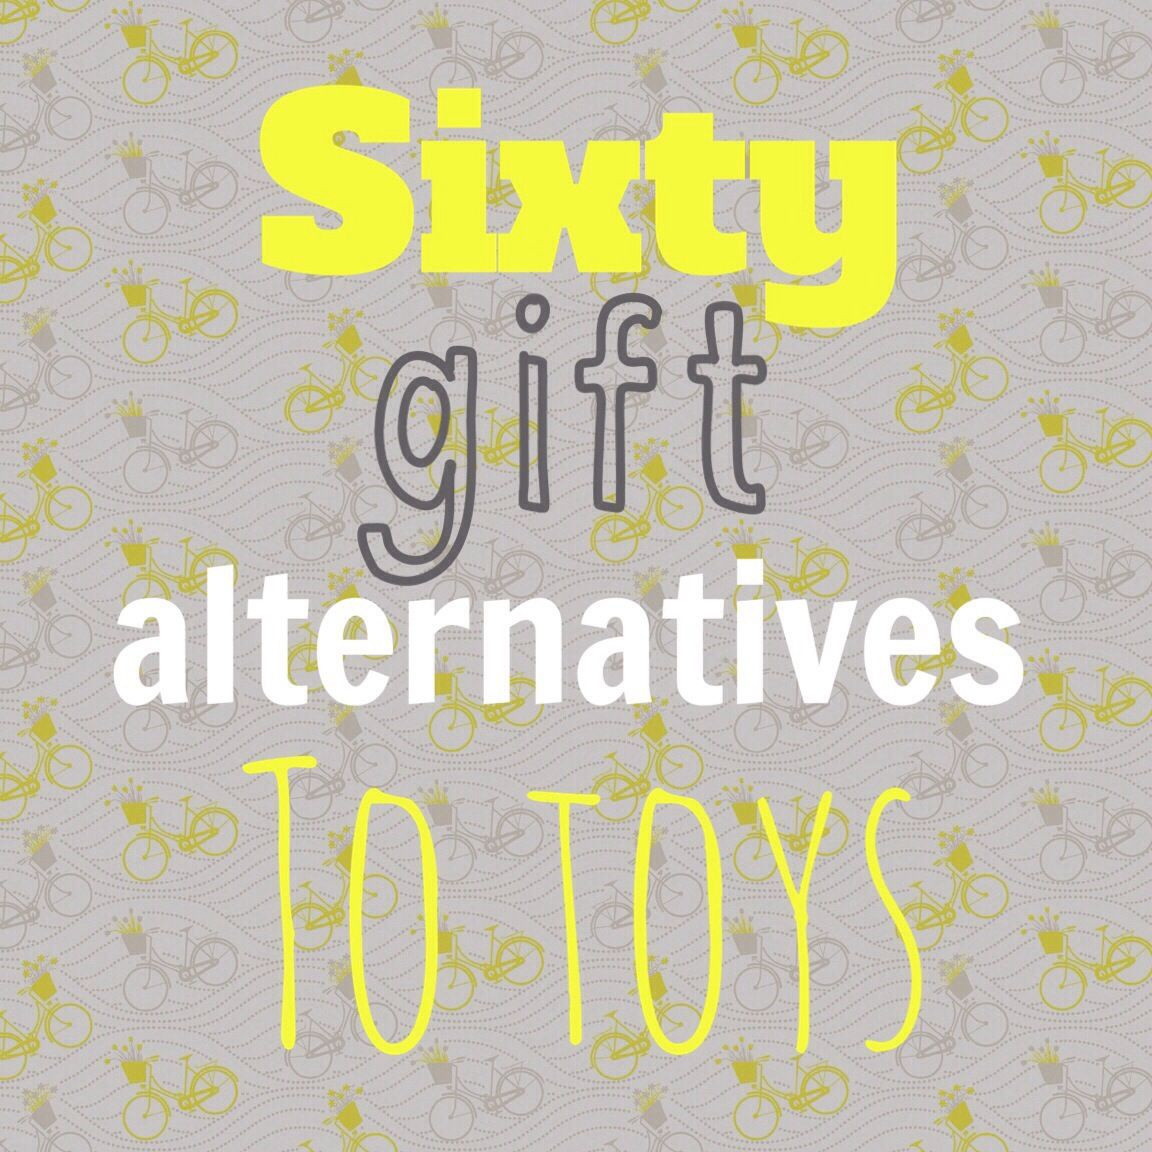 Sixty amazing and creative gift alternatives to toys | Holiday ...